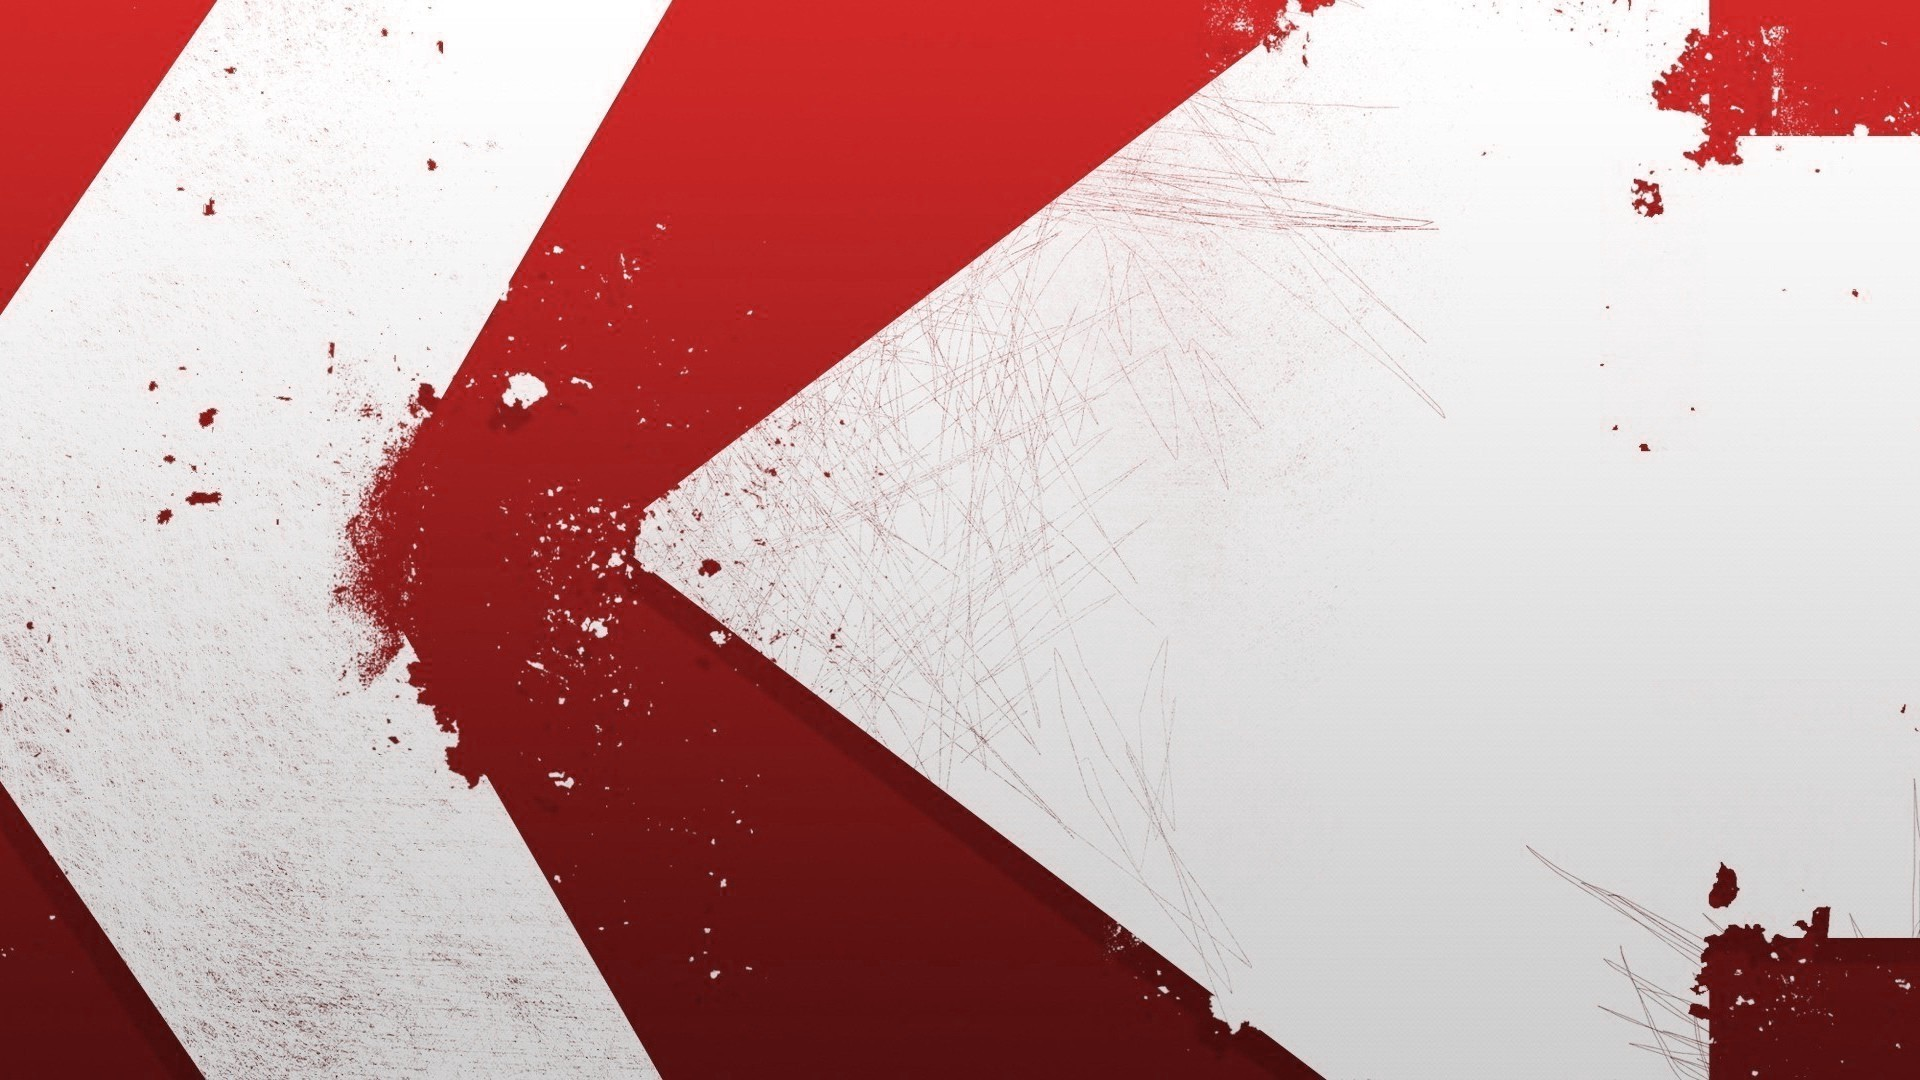 Red and White Wallpapers - WallpaperSafari